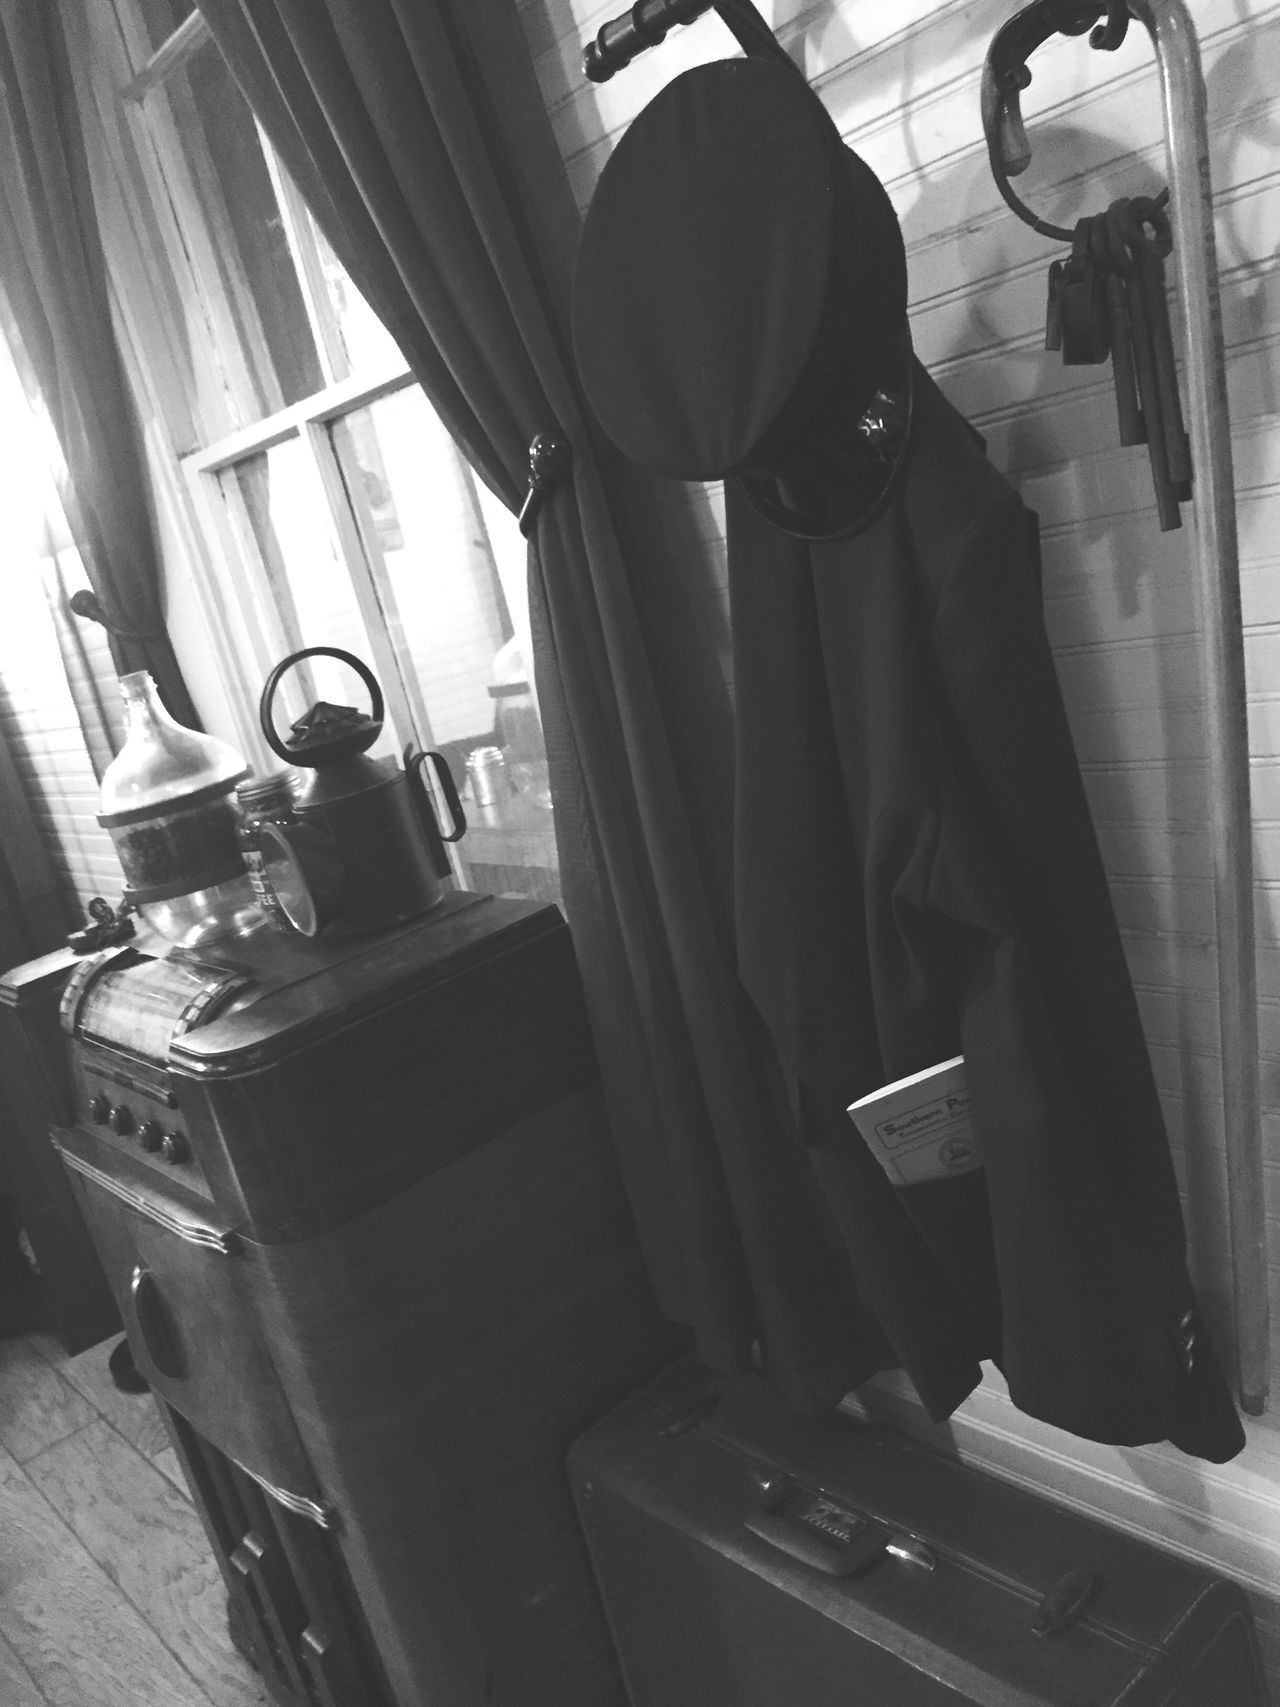 Monochrome Photography Vintage Window Jacket Hat Items Objects Music Box Radio Briefcase Emily's Cafe Finding New Frontiers